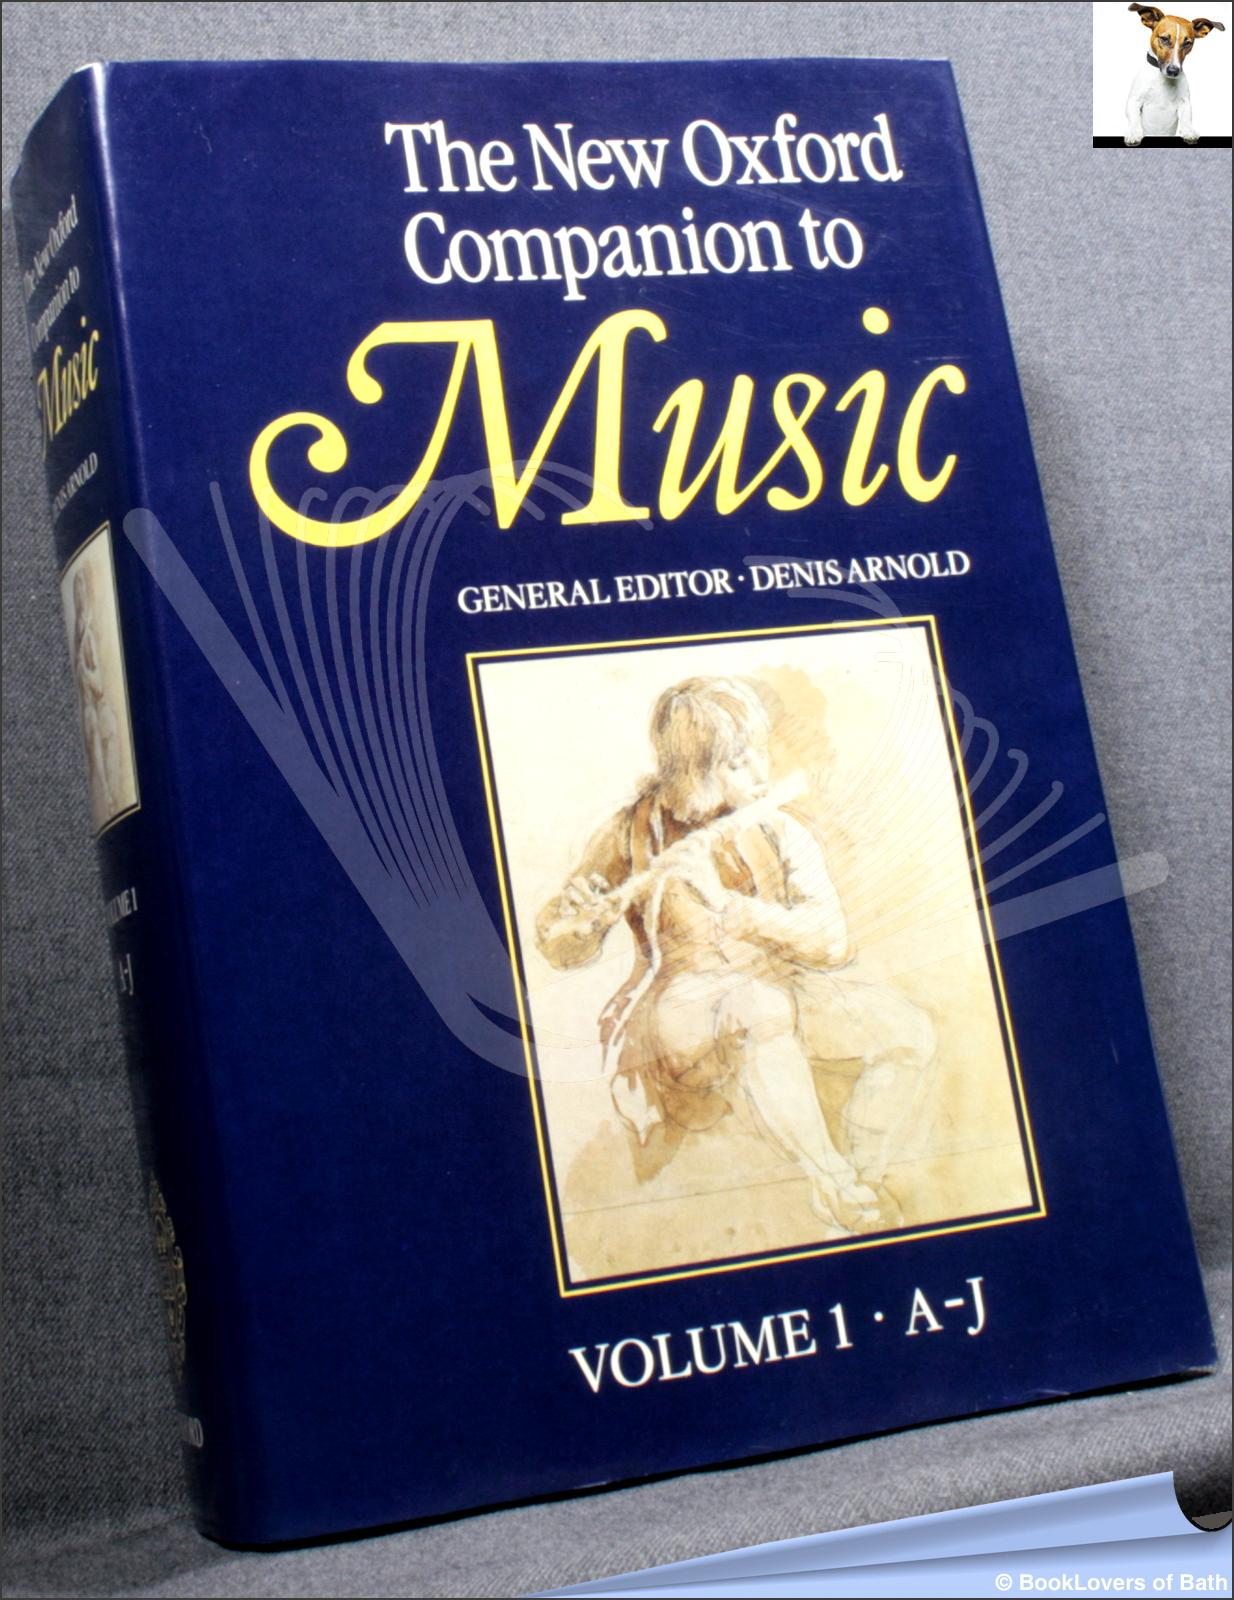 The New Oxford Companion to Music - Denis Arnold